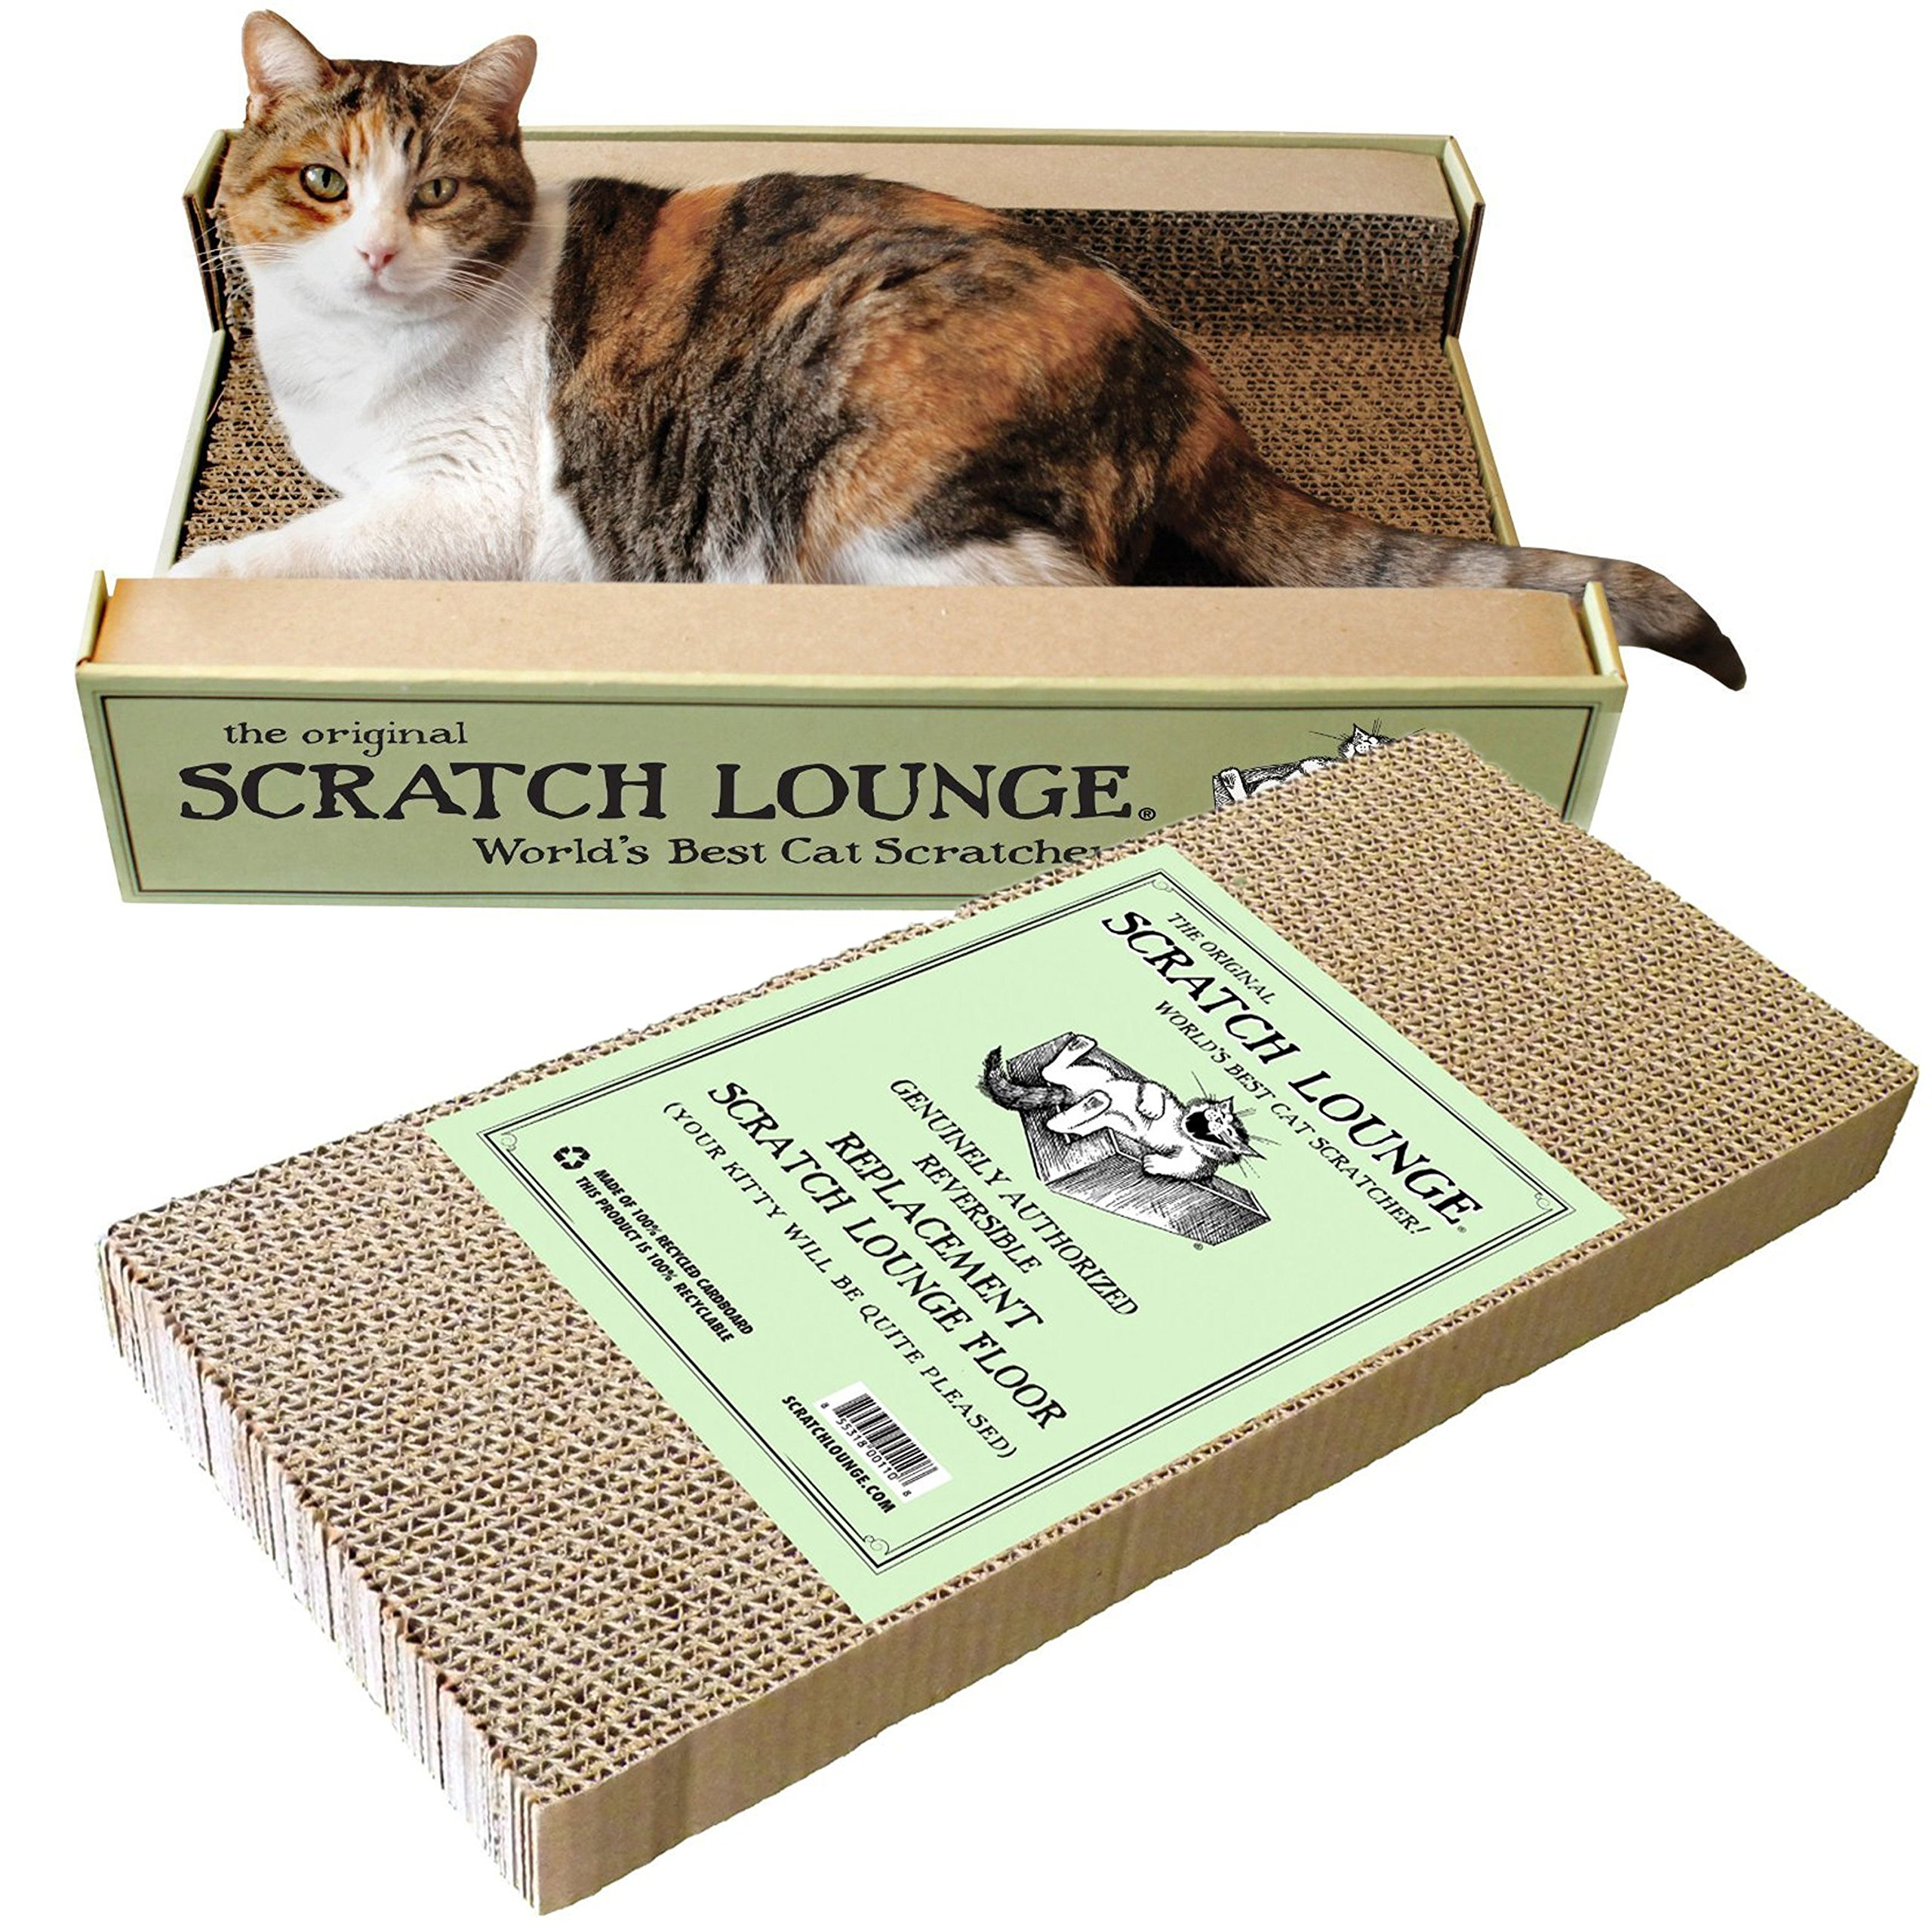 Scratch Lounge - Reversible Cardboard Cat Scratcher with Floor Refill and Catnip